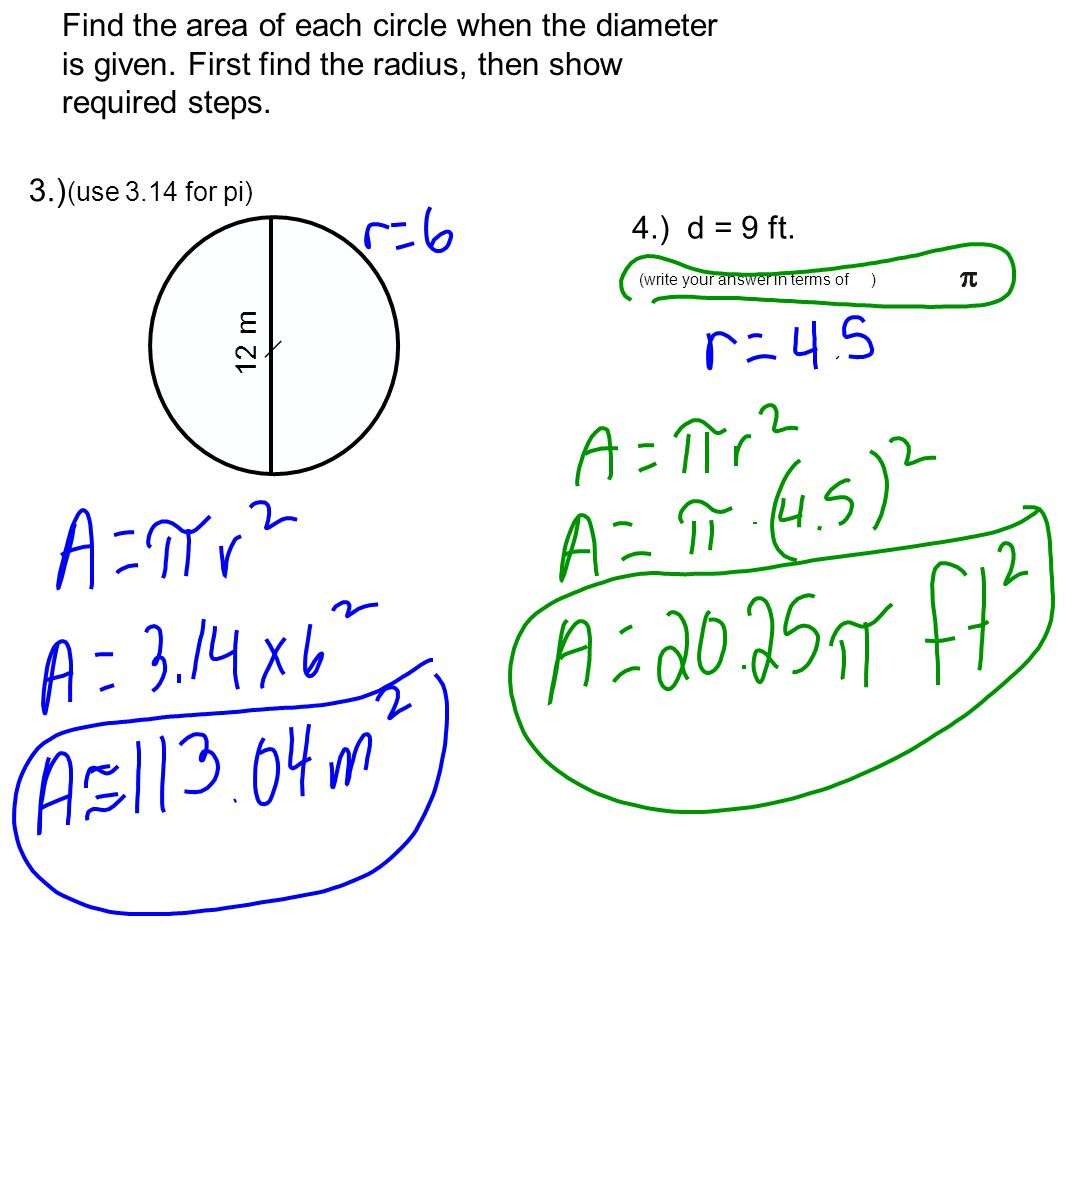 Circumference Calculator Circle Circumference And Area Of A Circle  Calculator Find The Area Of Each